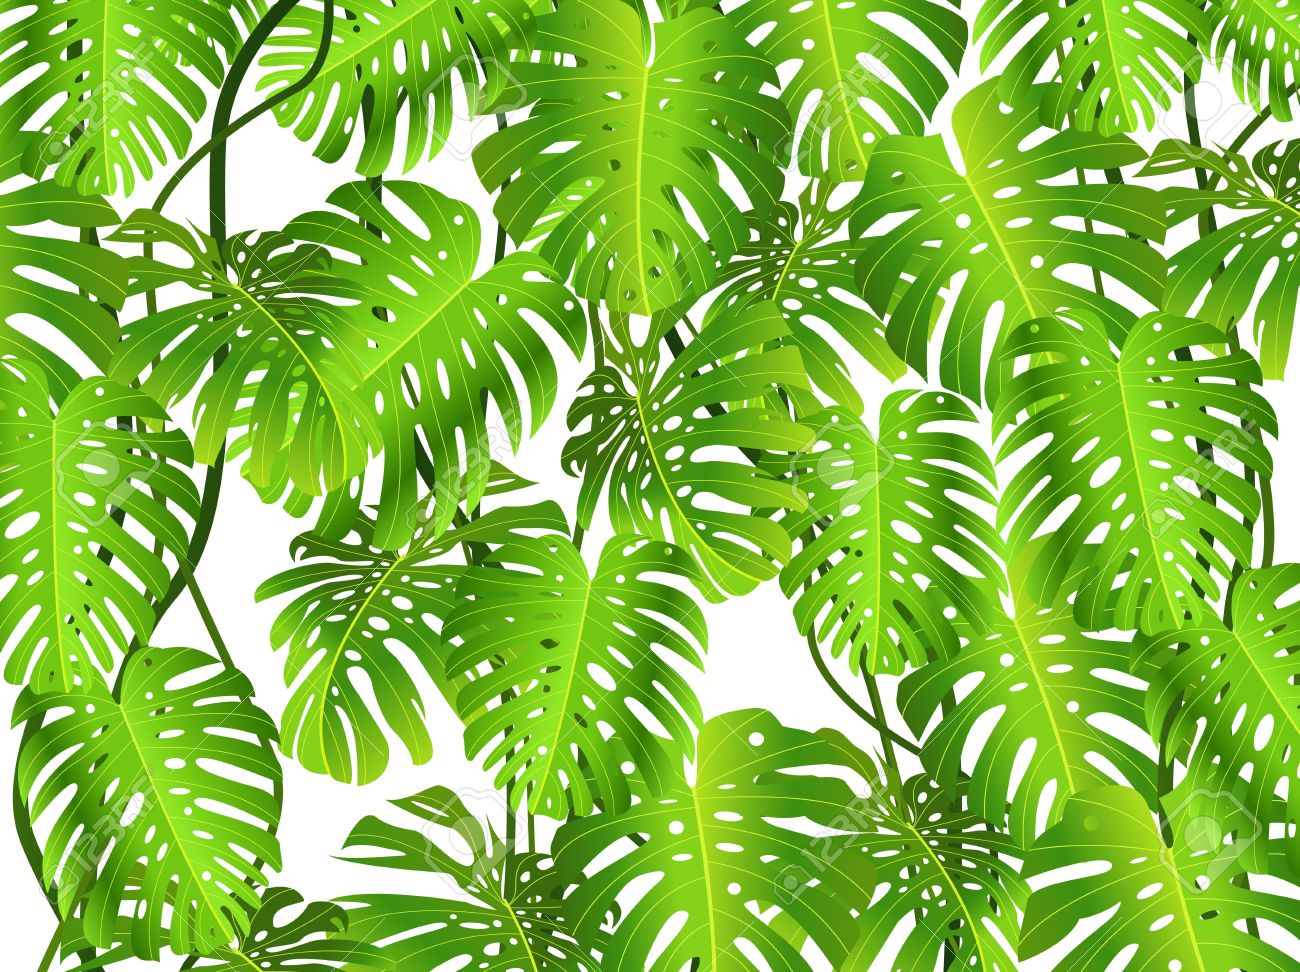 Tropical Leaf Background Royalty Free Cliparts Vectors And Stock Illustration Image 13496692 Find & download free graphic resources for leaf background. tropical leaf background